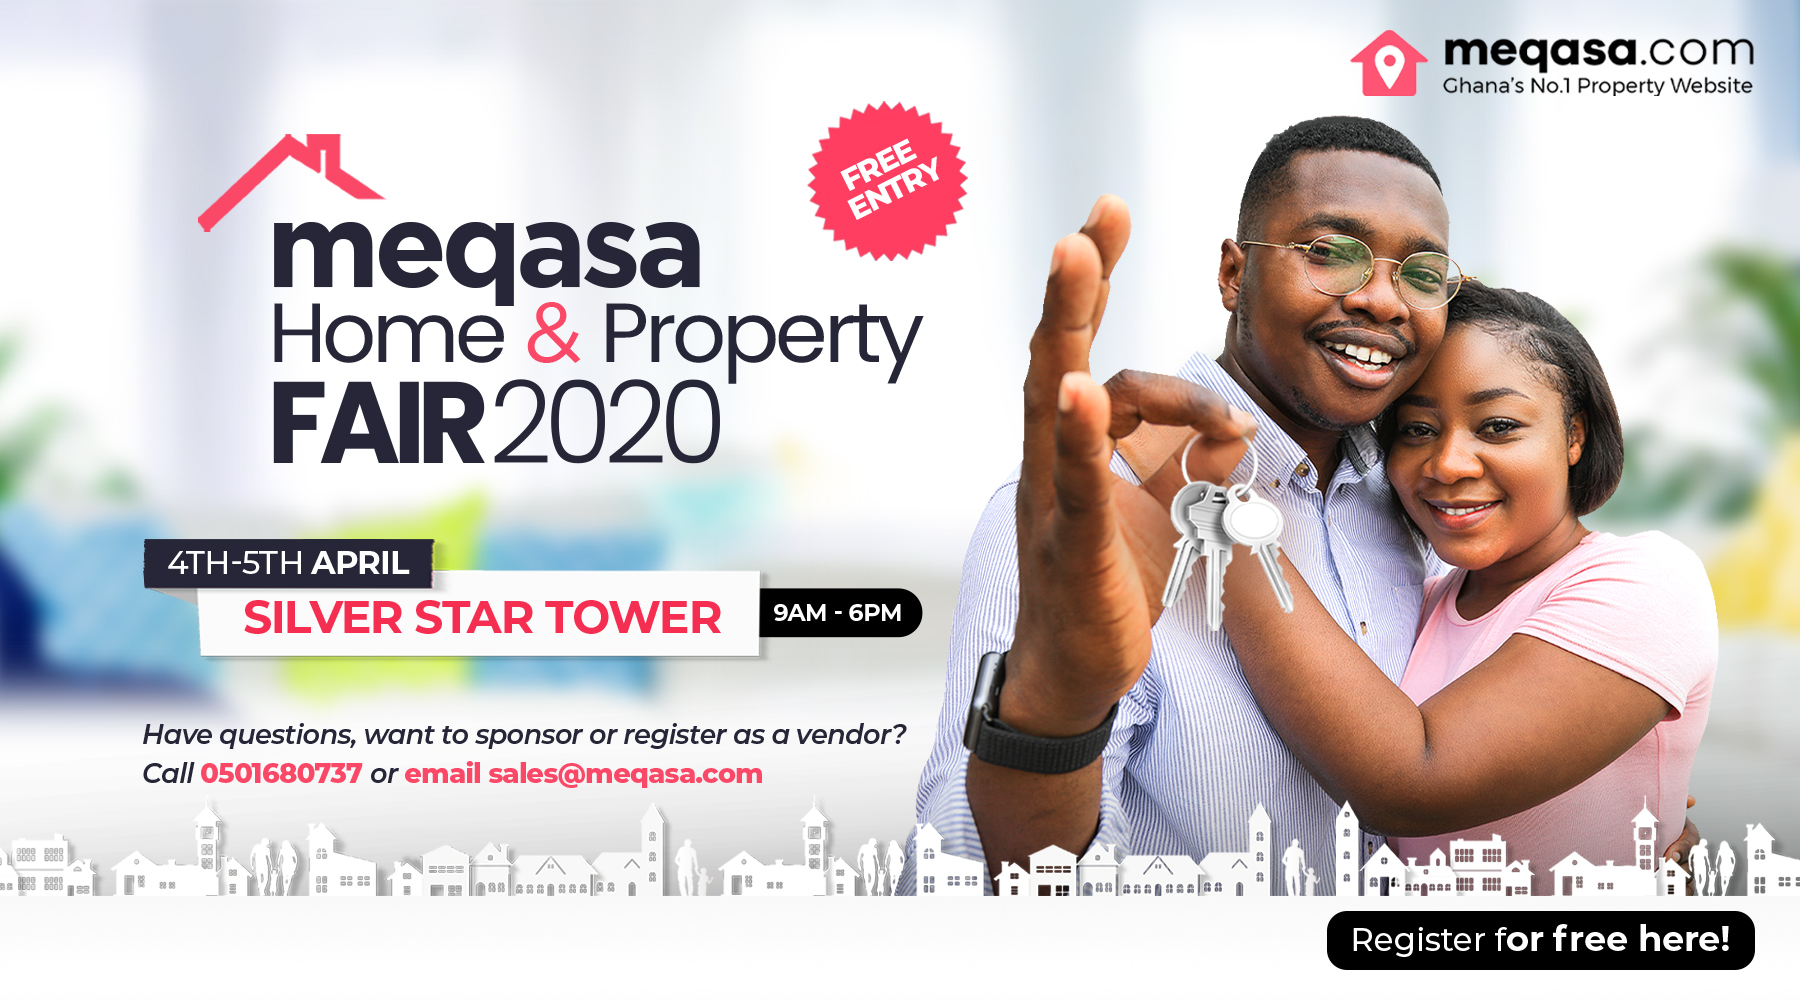 Register for meqasa home & property fair 2020. 4th - 5th April 2020. silver star tower. 9am - 6pm. Free Entry